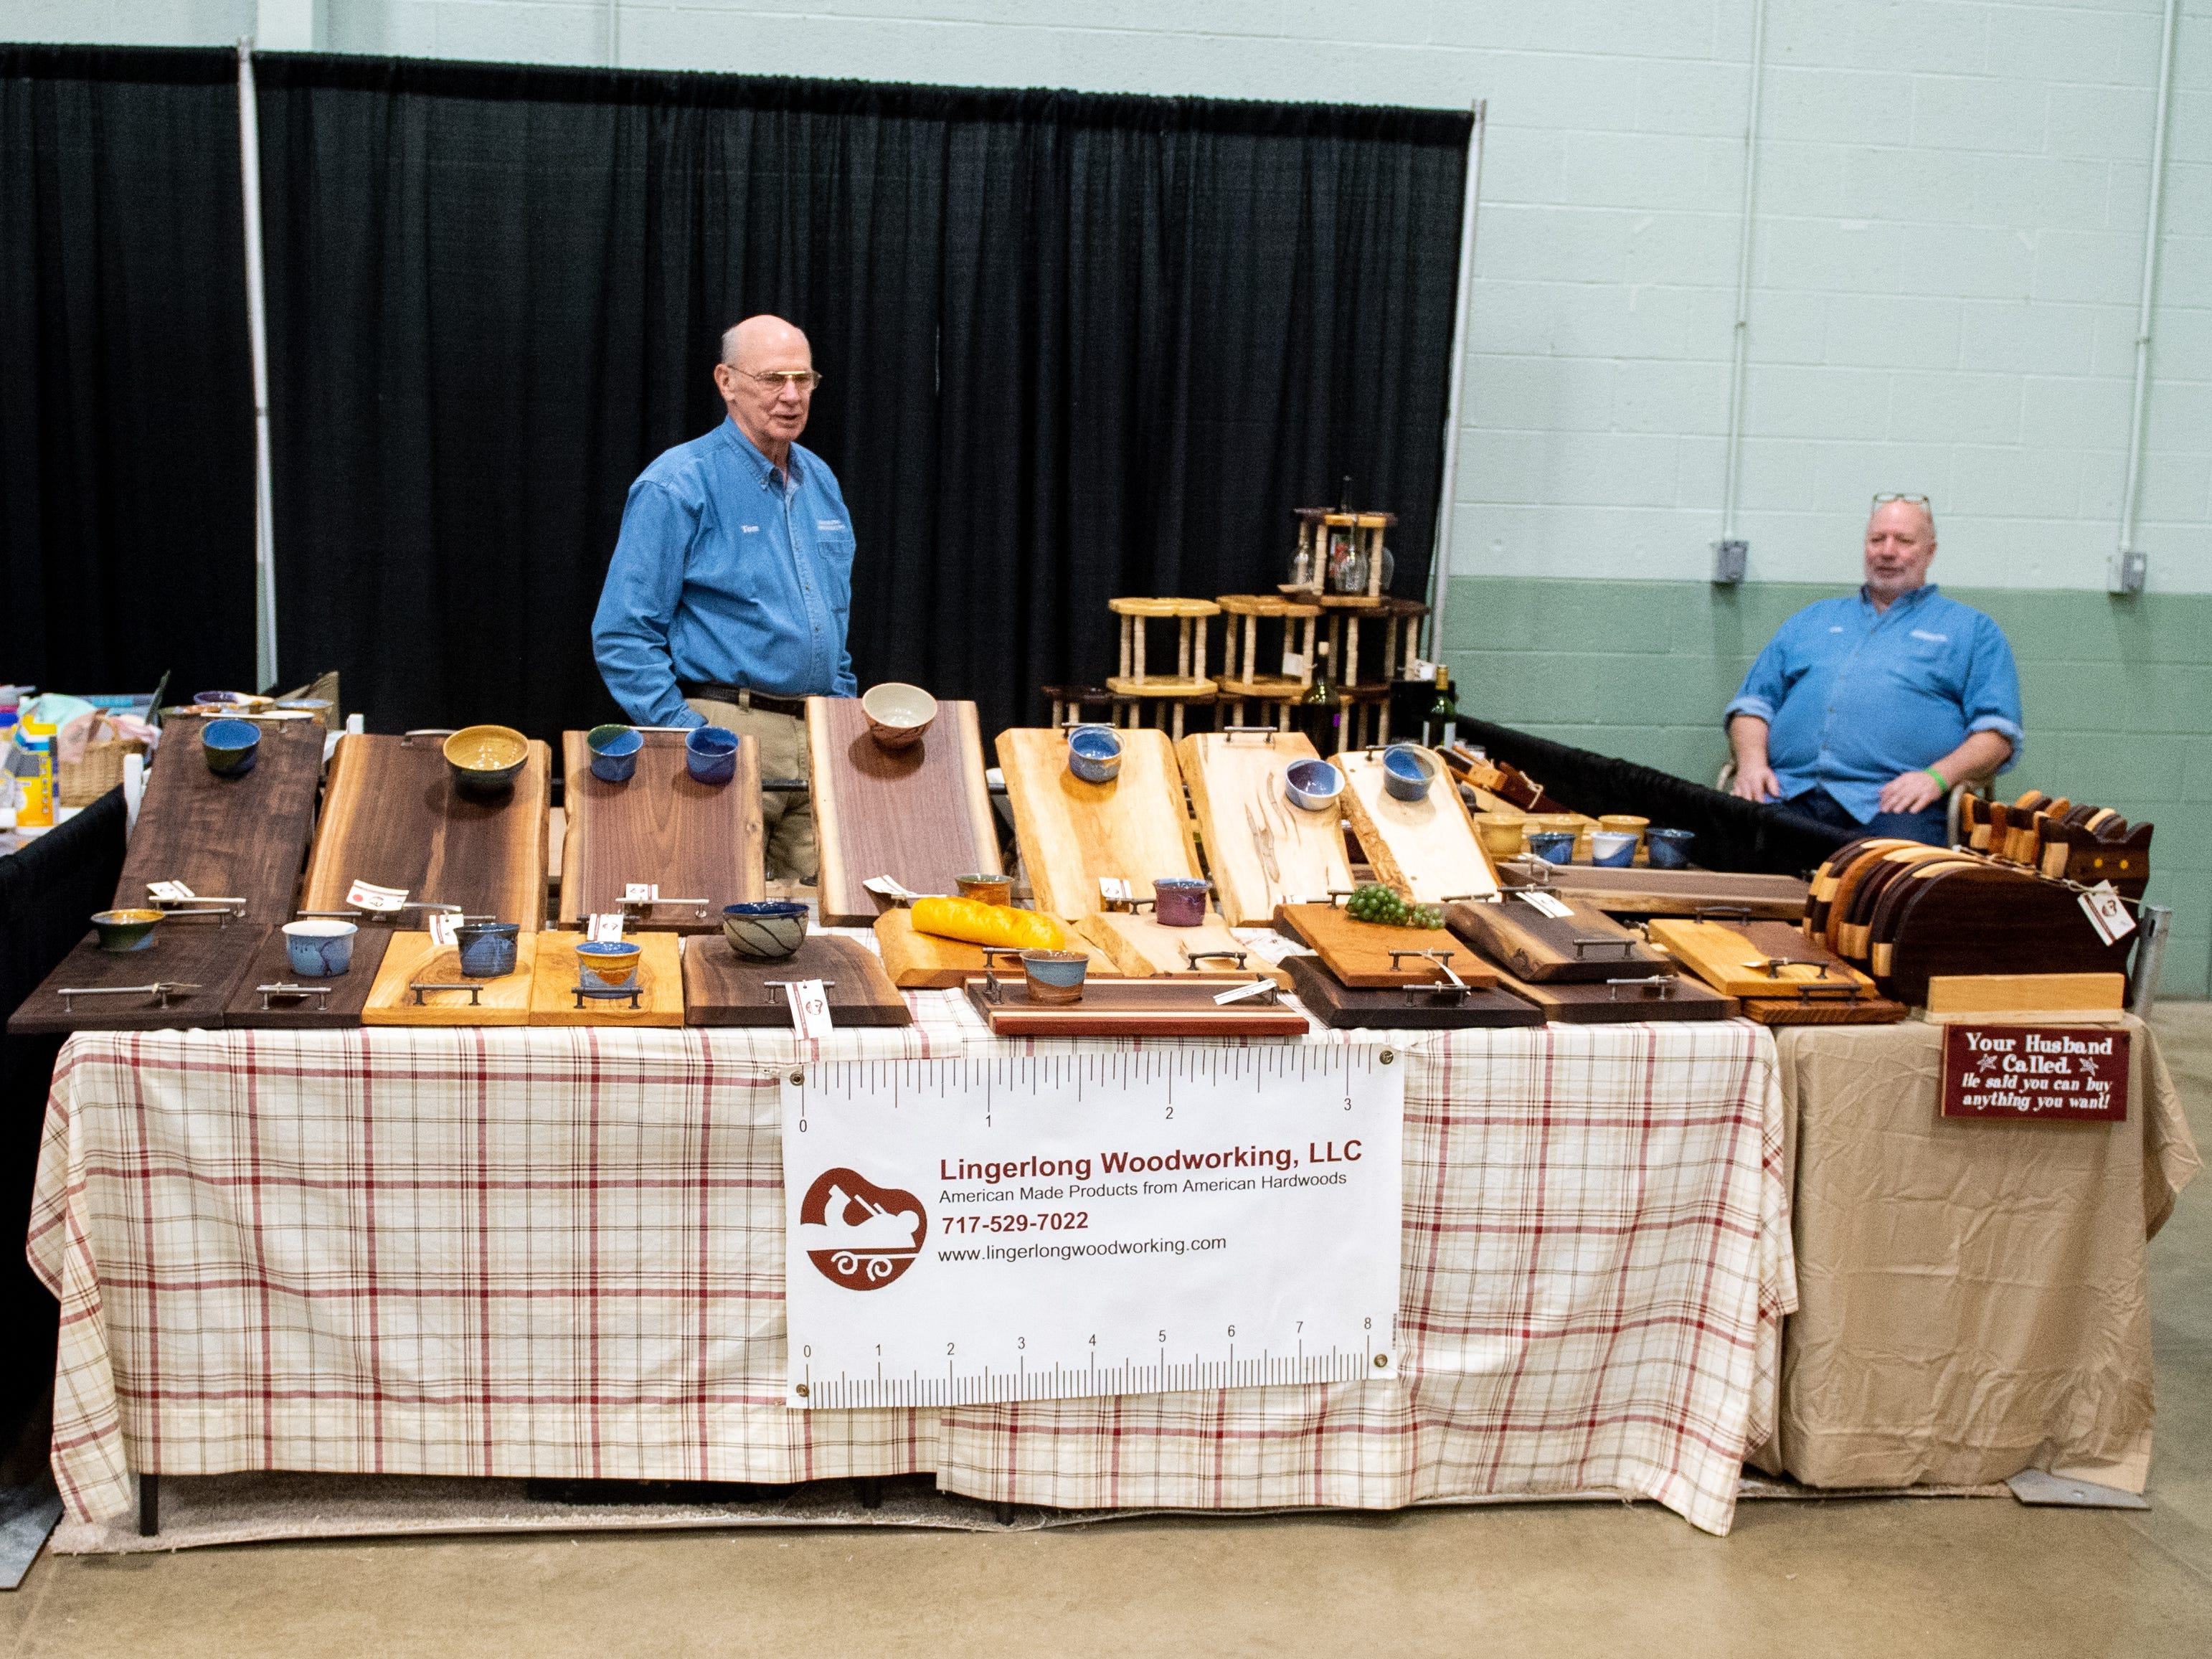 Lingerlong Woodworking, LLC has a booth at the 2019 Home & Garden Show, February 8, 2019.